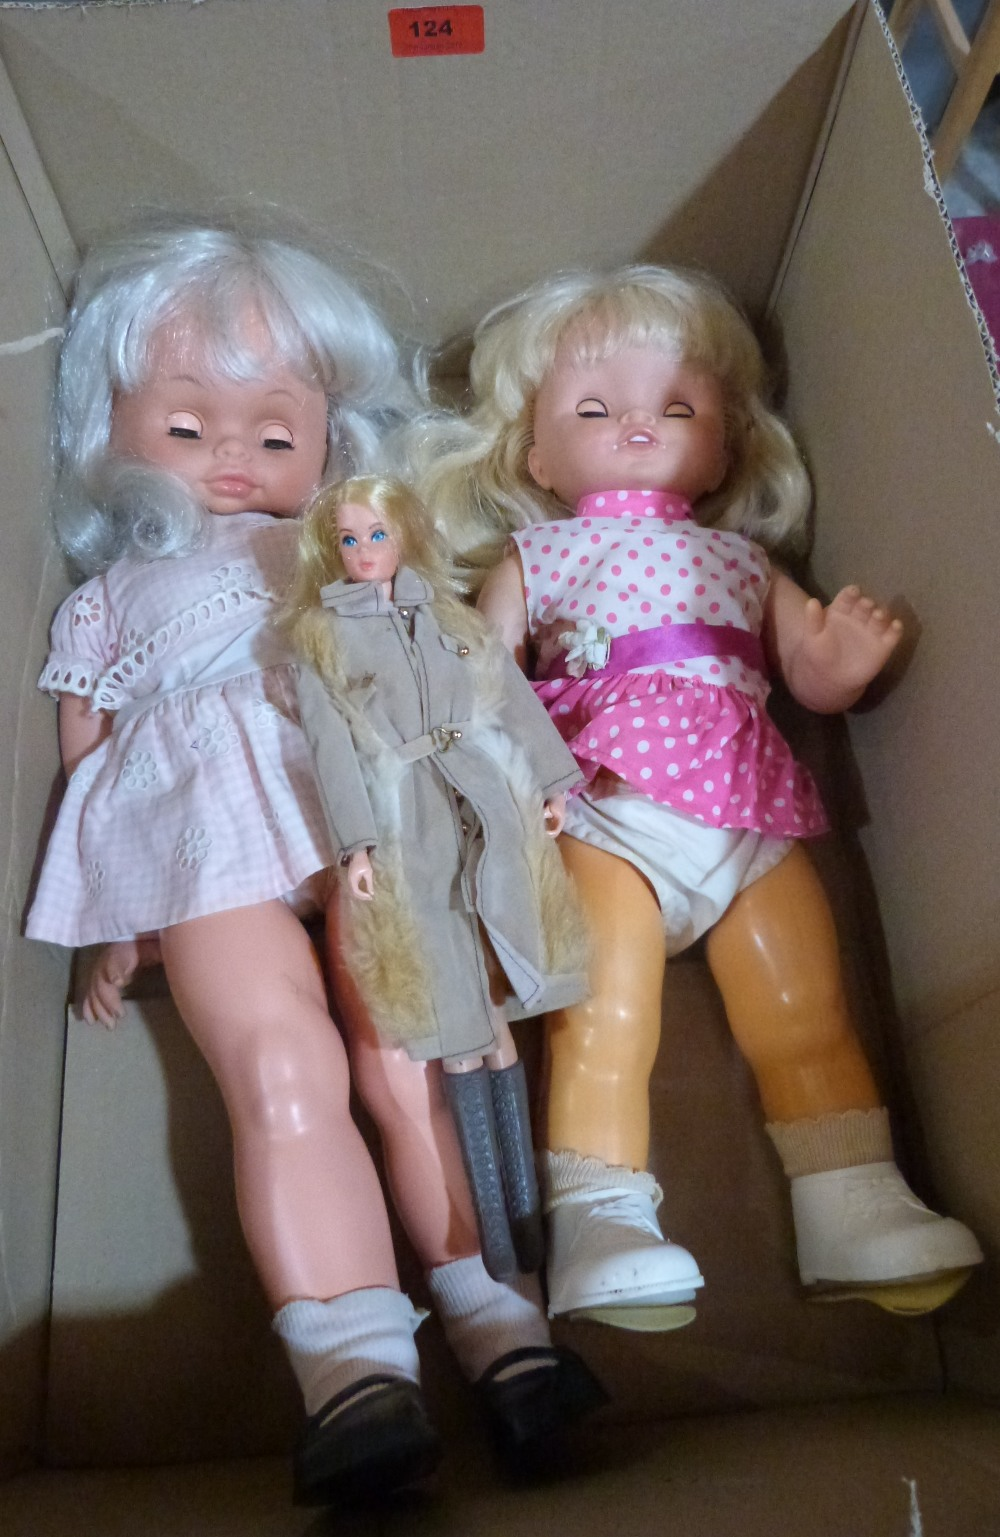 Vintage Toys. A 1960s Sindy doll with original clothes together with two larger vintage dolls with